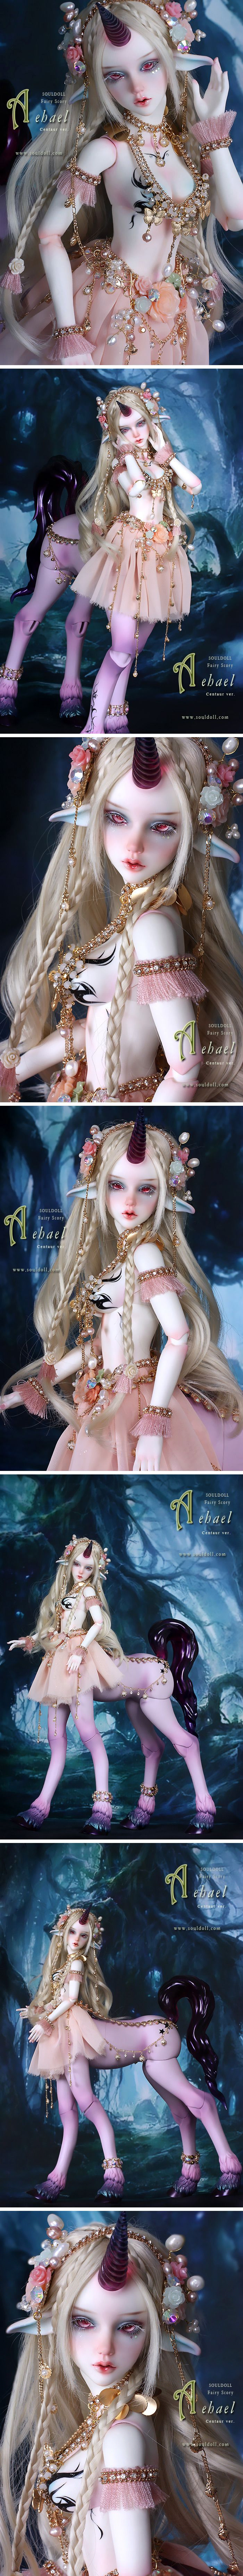 *Special ball jointed doll for you, SOULDOLL* Aehael-Centaur ver.